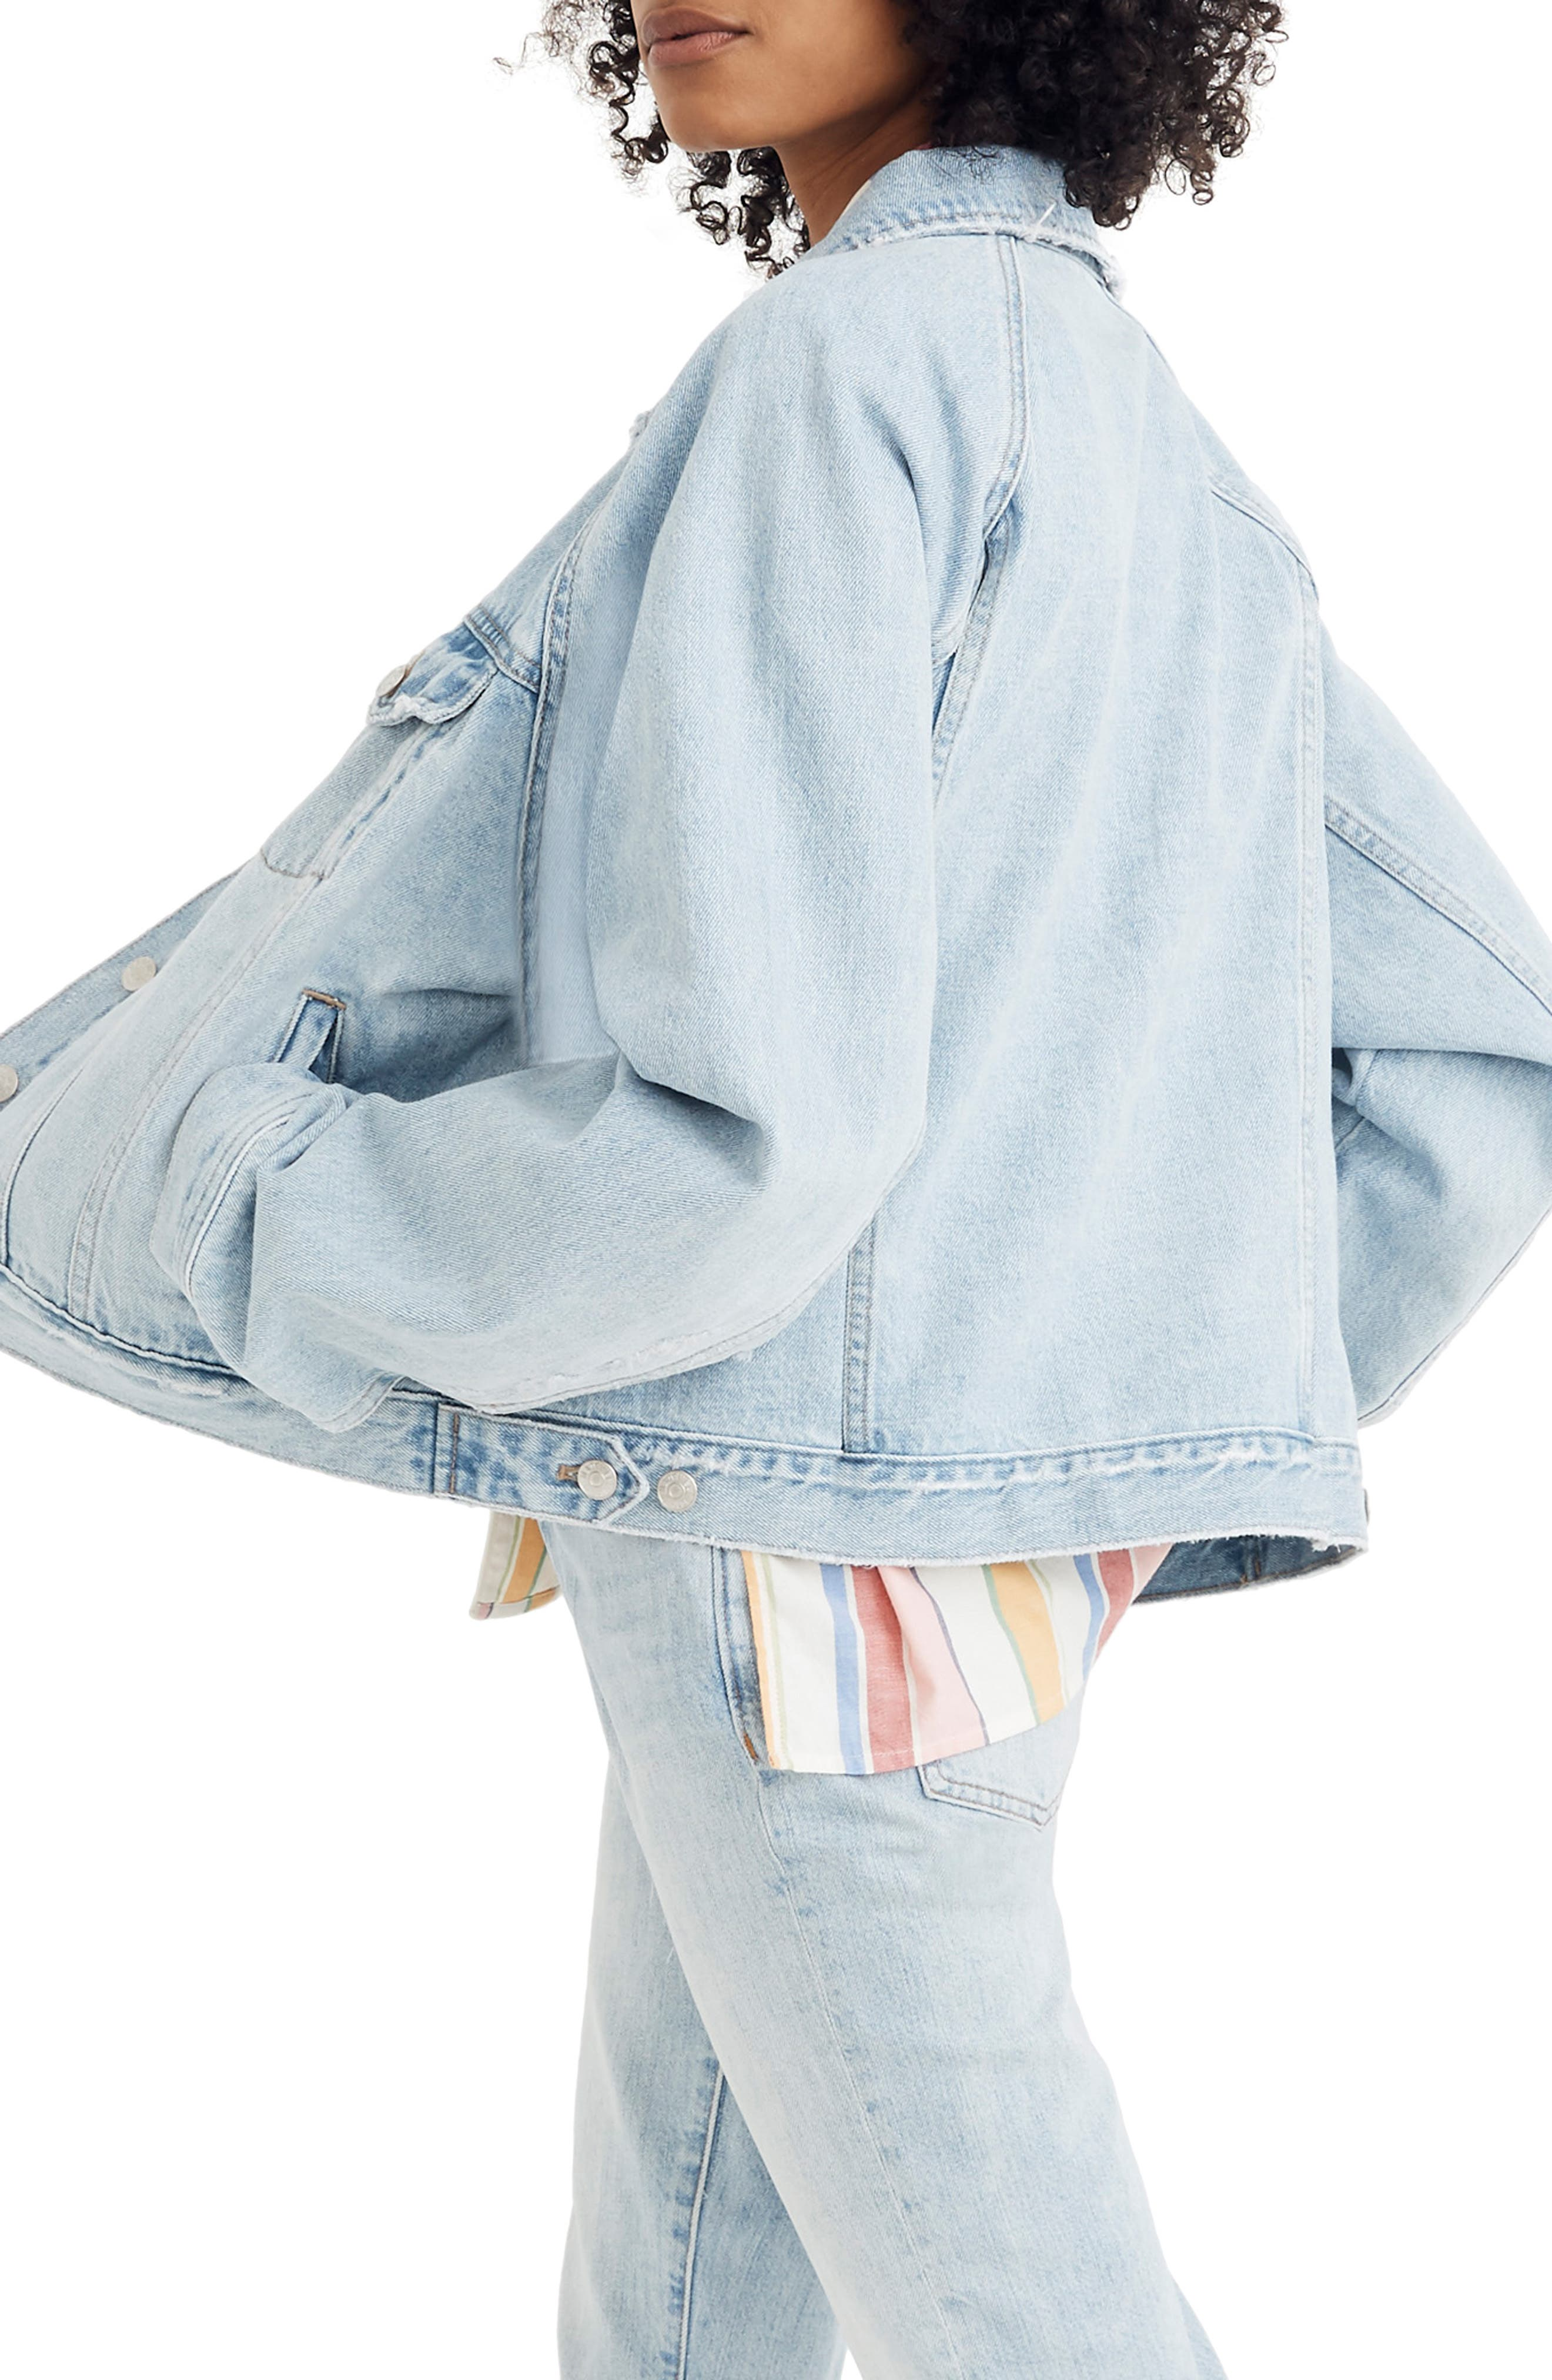 MADEWELL, The Raglan Oversize Jean Jacket, Alternate thumbnail 2, color, BRISTOL